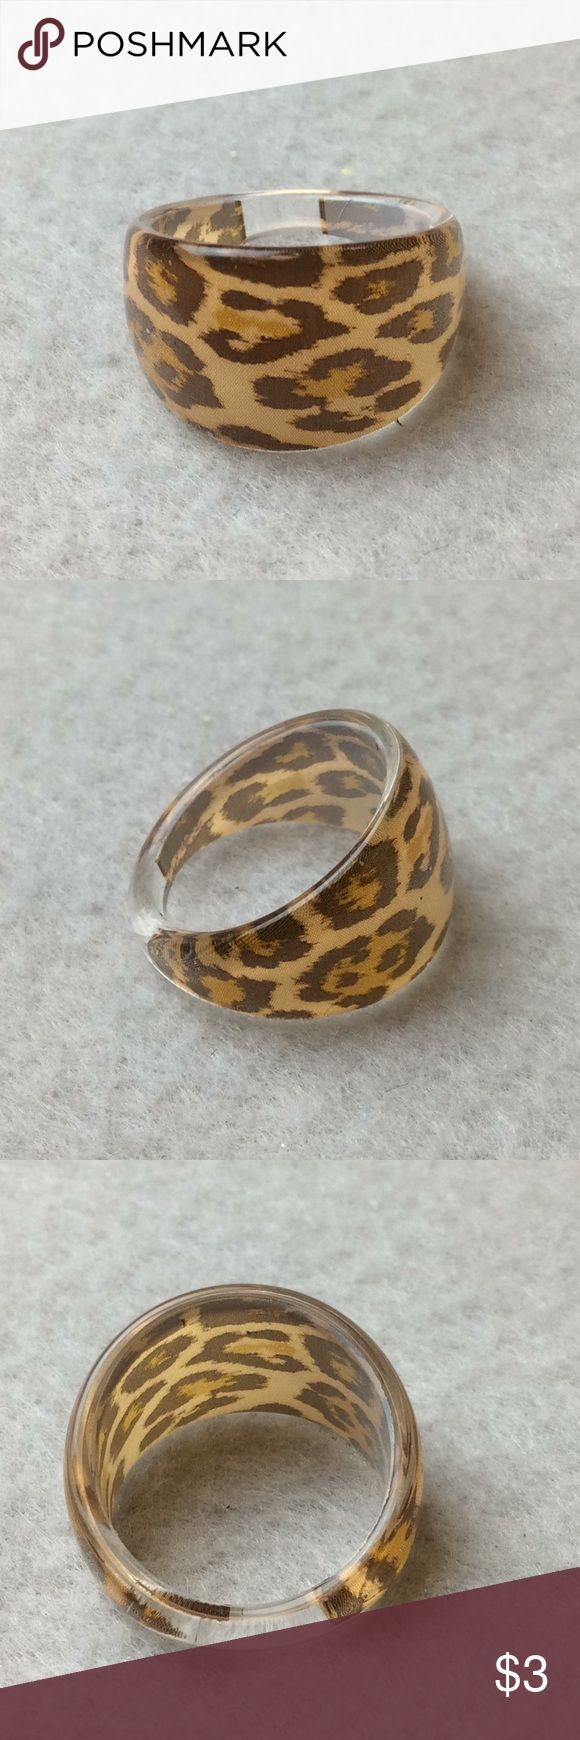 New Animal Print Ring - Size 6 Bundle 3 or more items and Save 20% 3732 Jewelry Rings